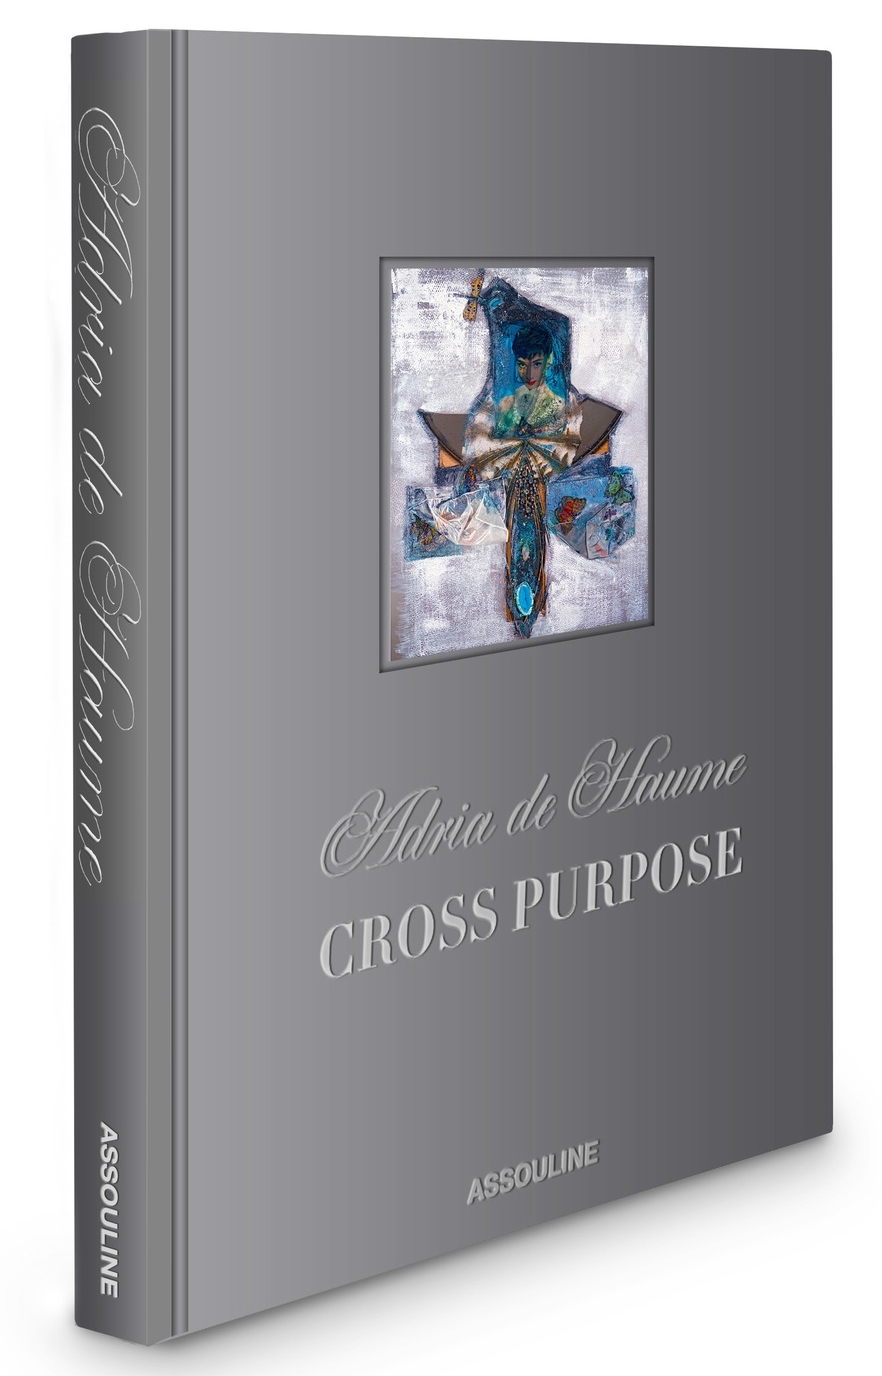 CROSS-HARDCOVER2.jpg